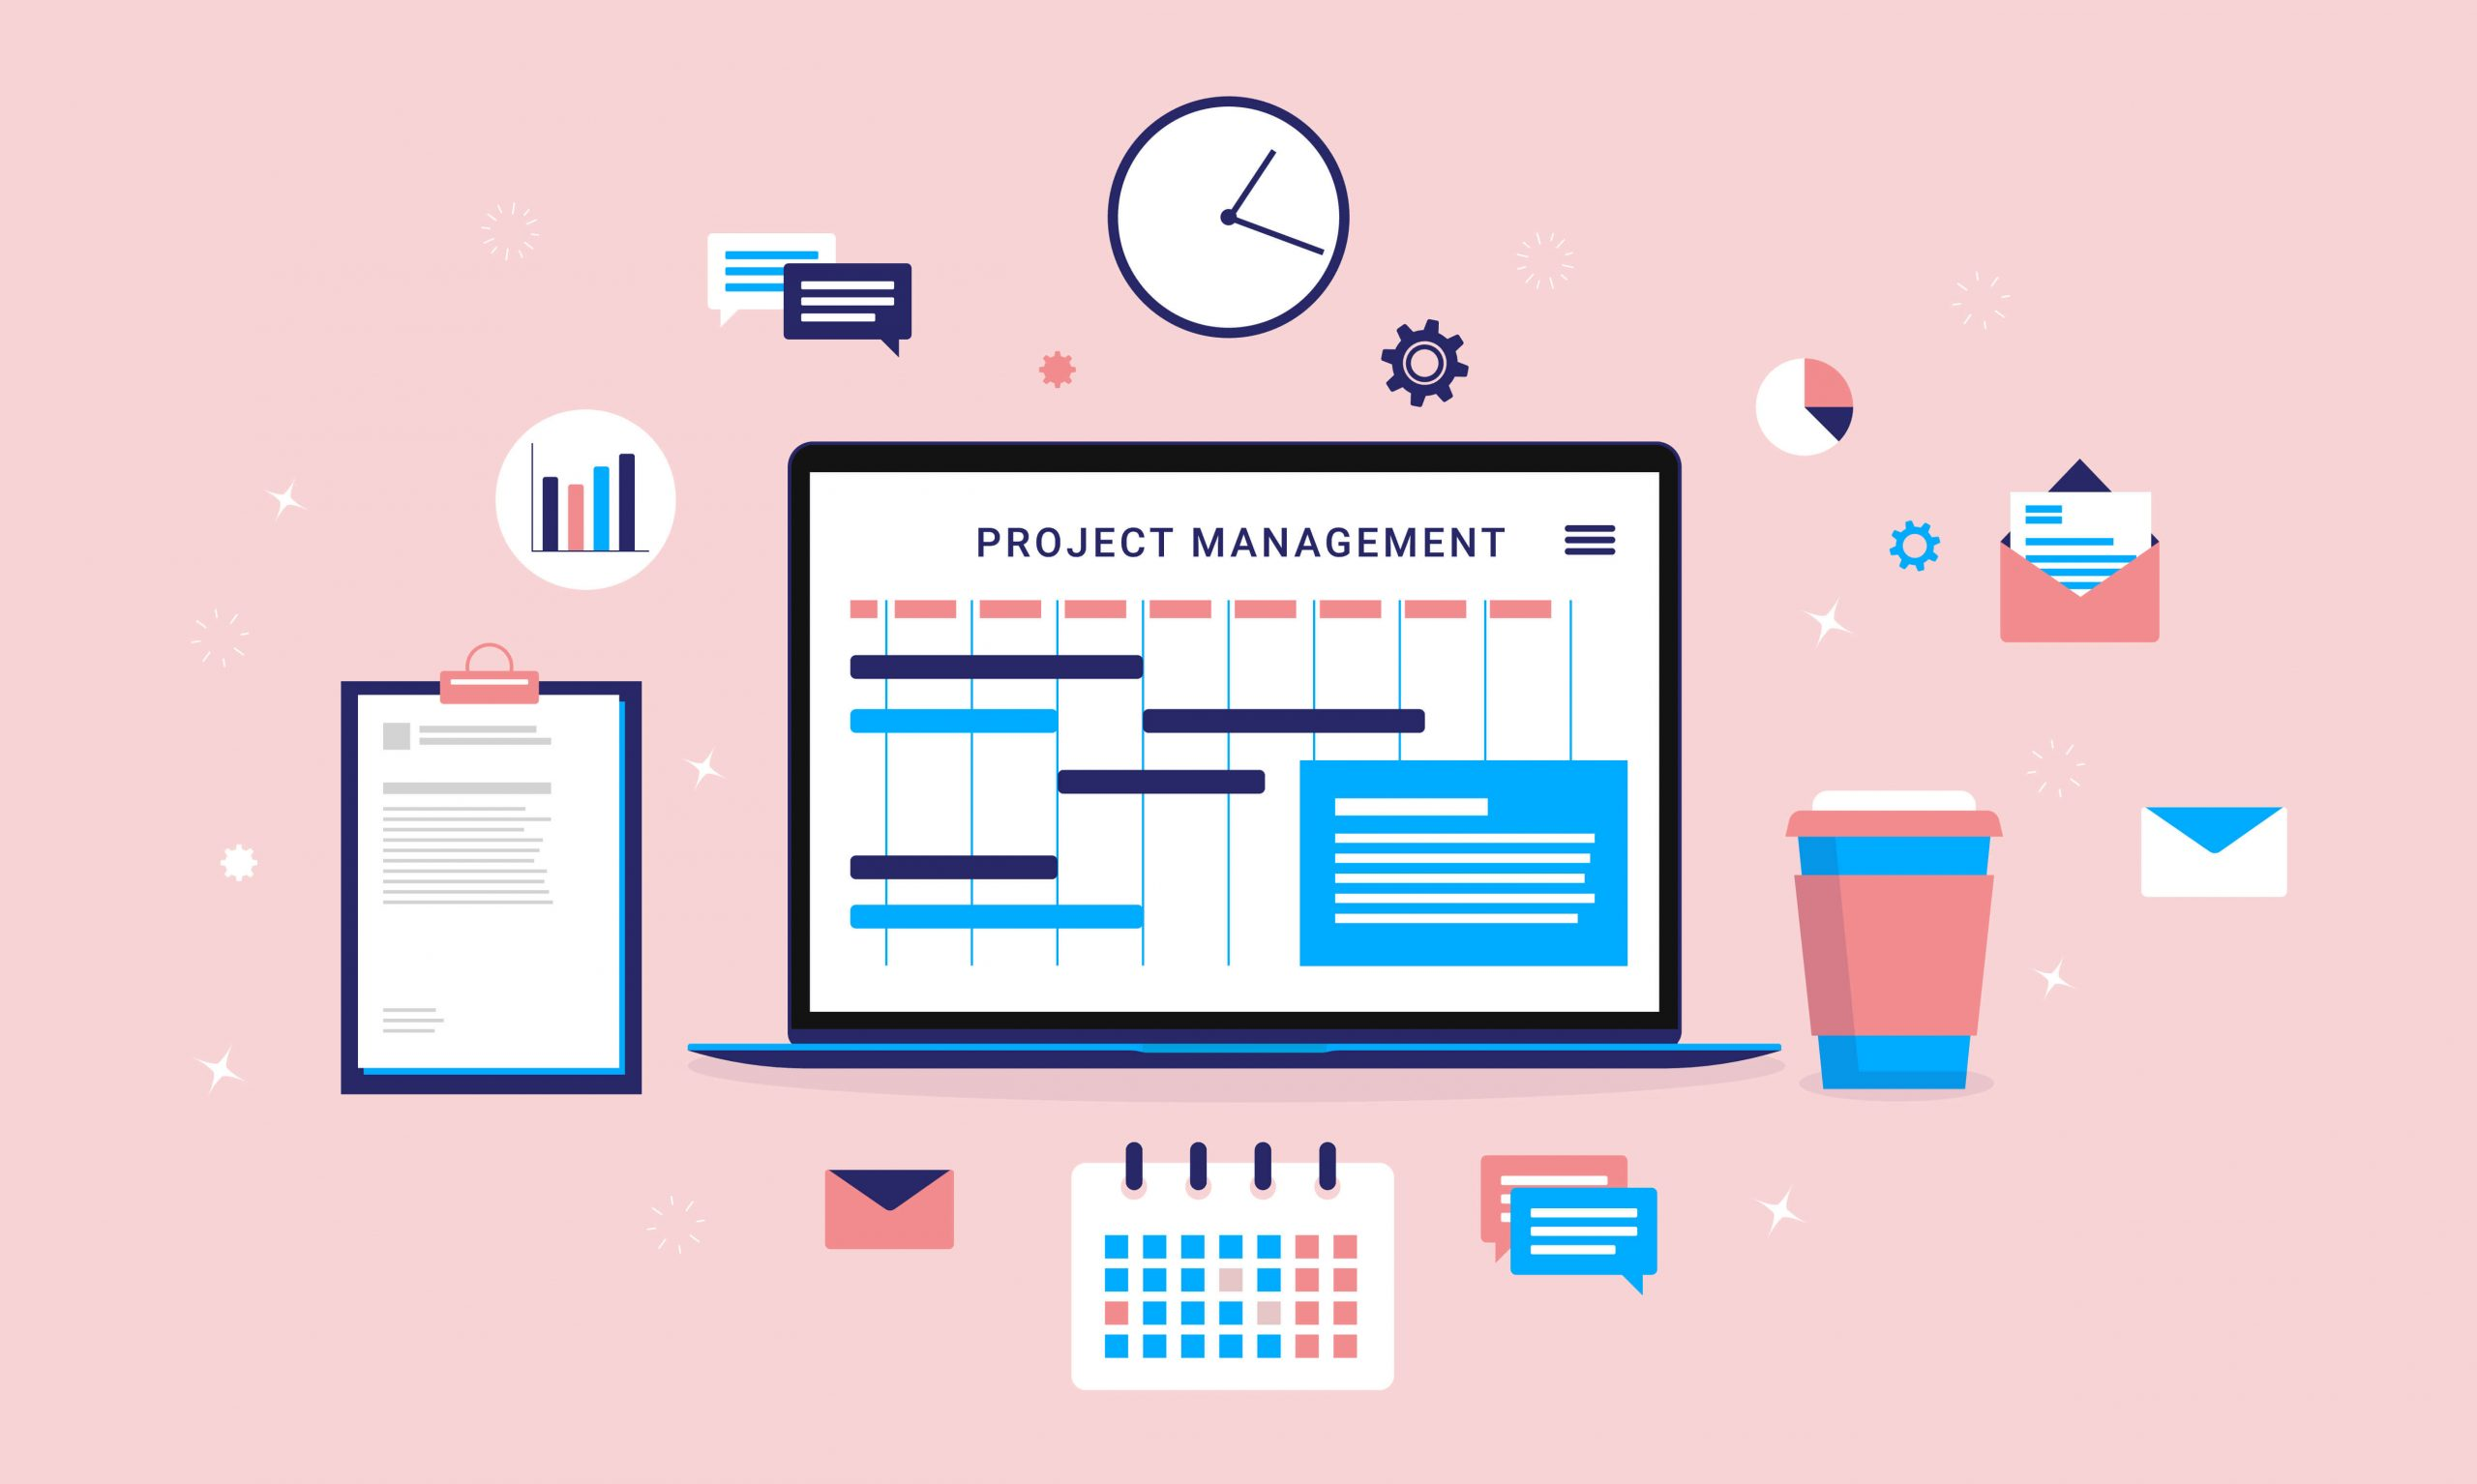 Roles and responsibilities of the project manager in software development - Roles-and-responsibilities-of-the-project-manager-in-software-development-1-scaled-2